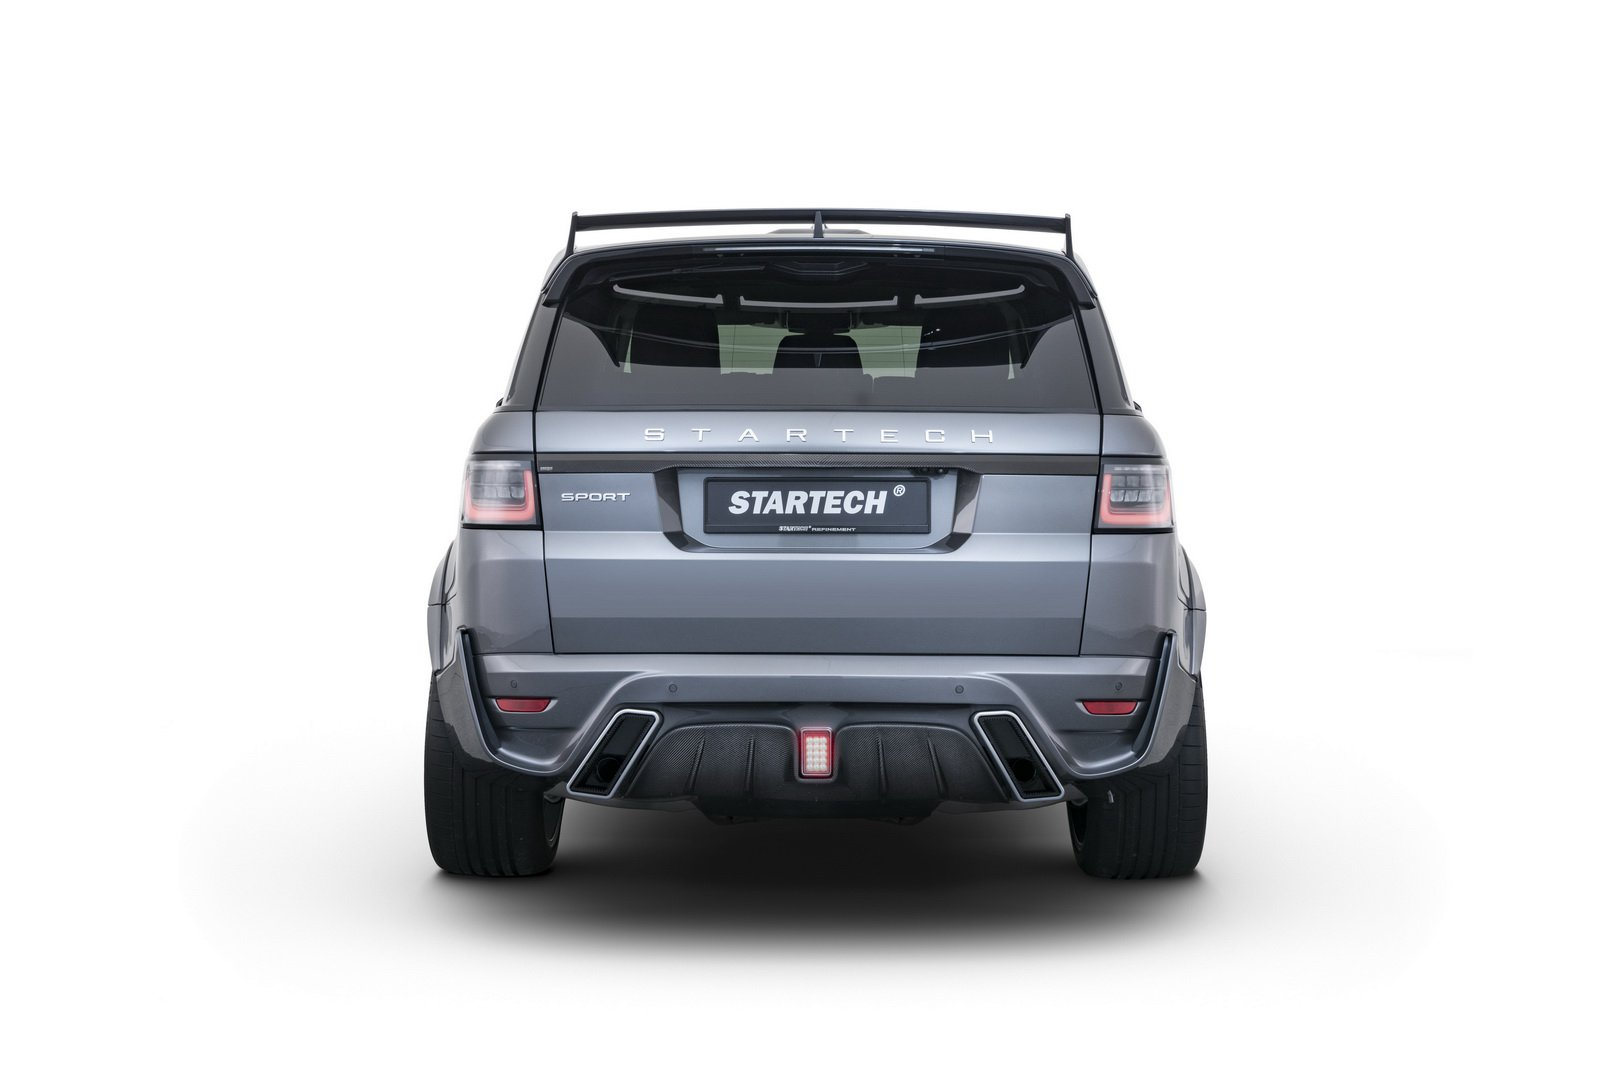 2019 STARTECH Range Rover Sport Rear Wallpapers (4)